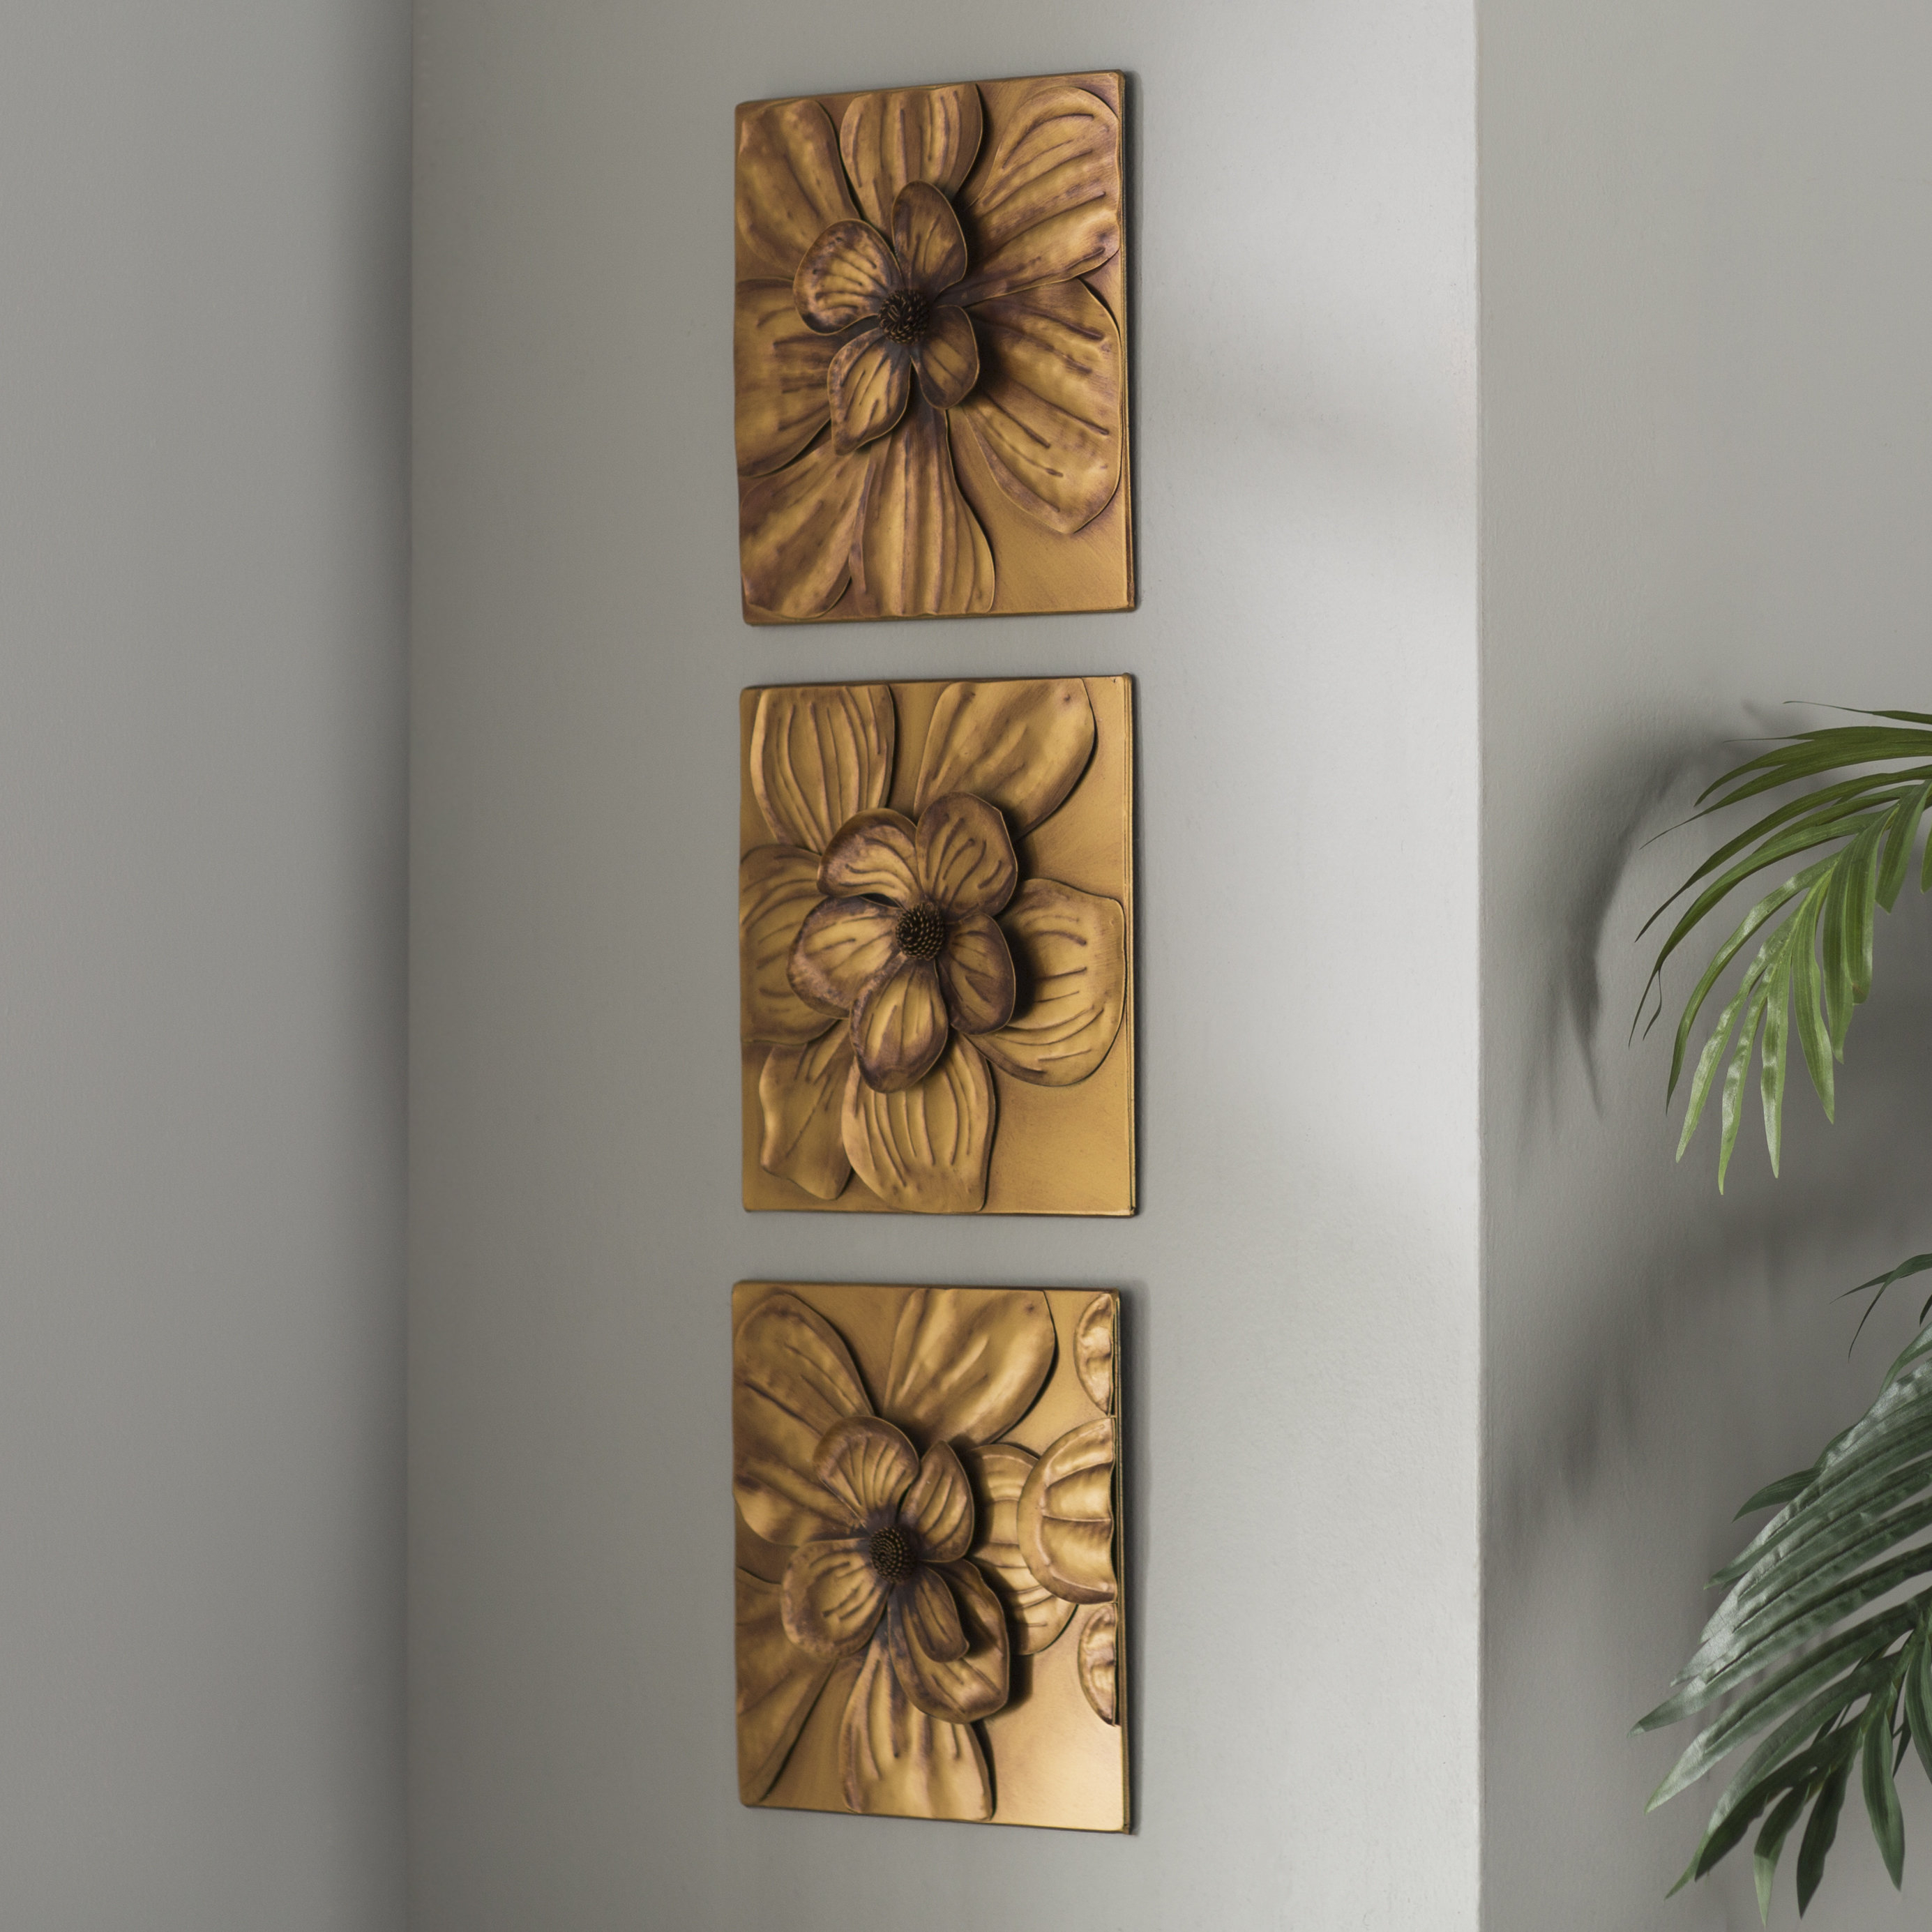 Charlton Home 3 Piece Magnolia Brown Panel Wall Décor Set & Reviews Pertaining To Most Recently Released 4 Piece Wall Decor Sets By Charlton Home (View 2 of 20)